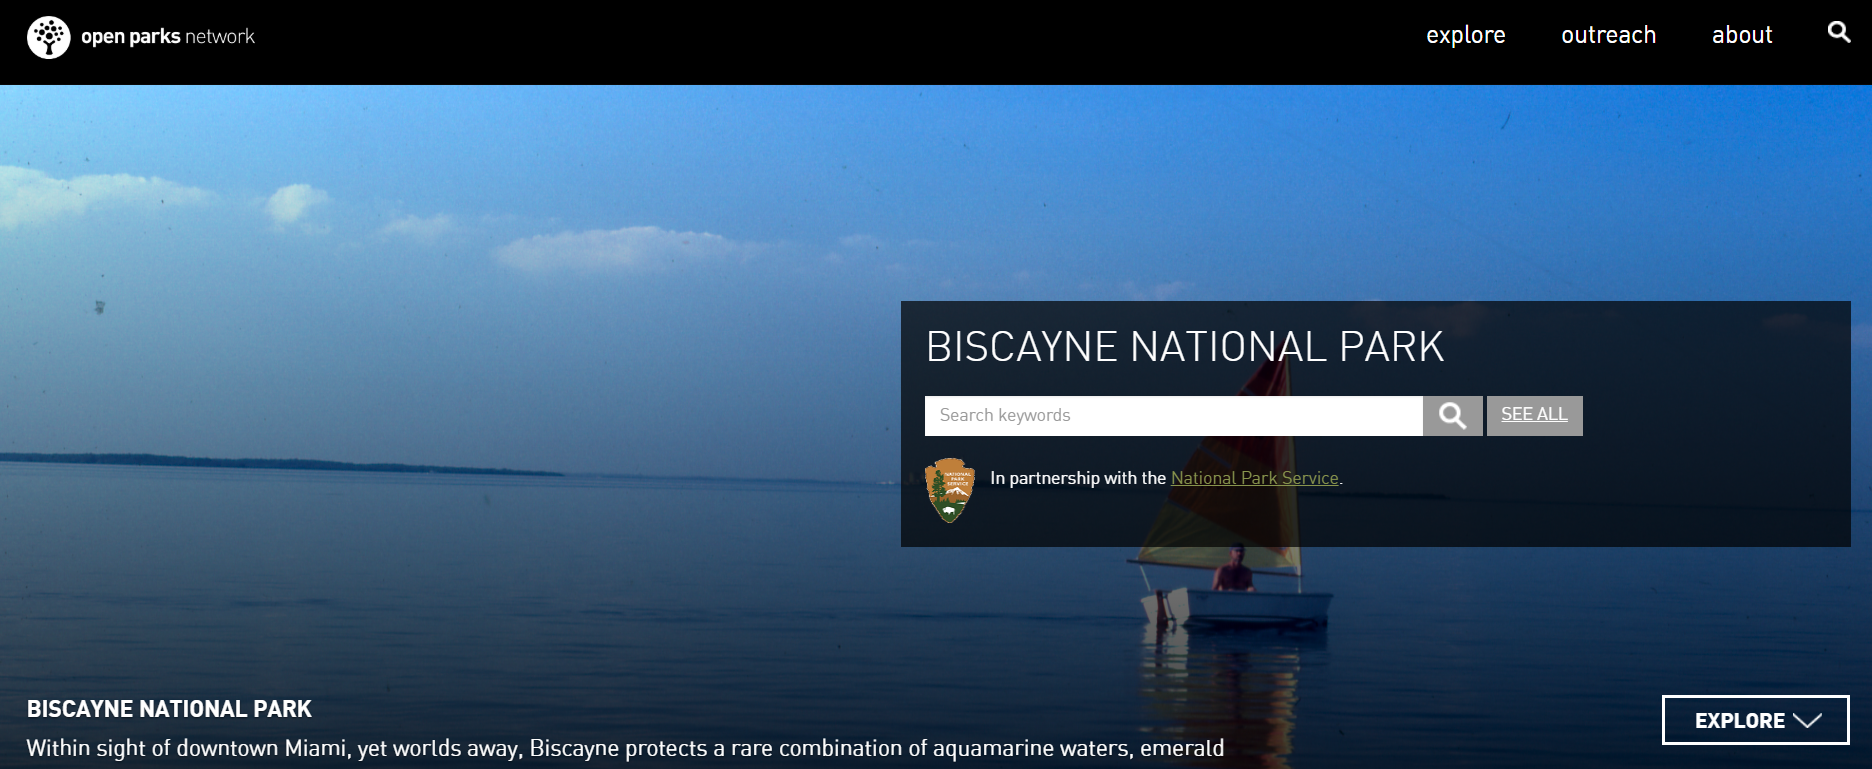 Open Parks Network web page for Biscayne National Park